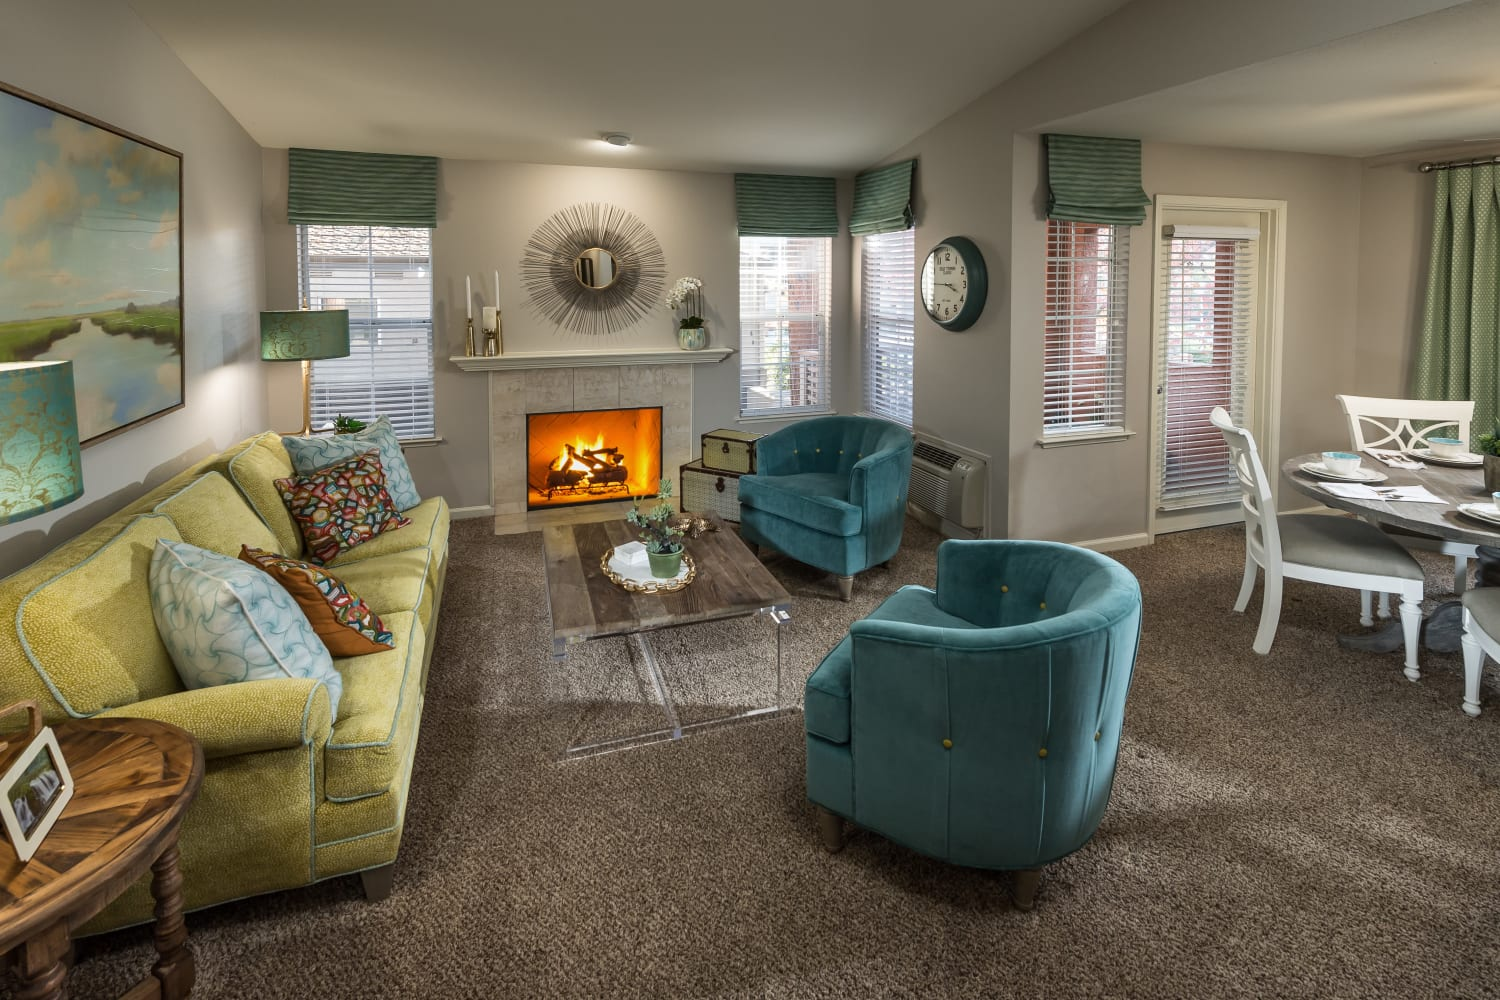 Enjoy open floor plans and plush carpet at Bella Vista Apartments in Santa Clara, California